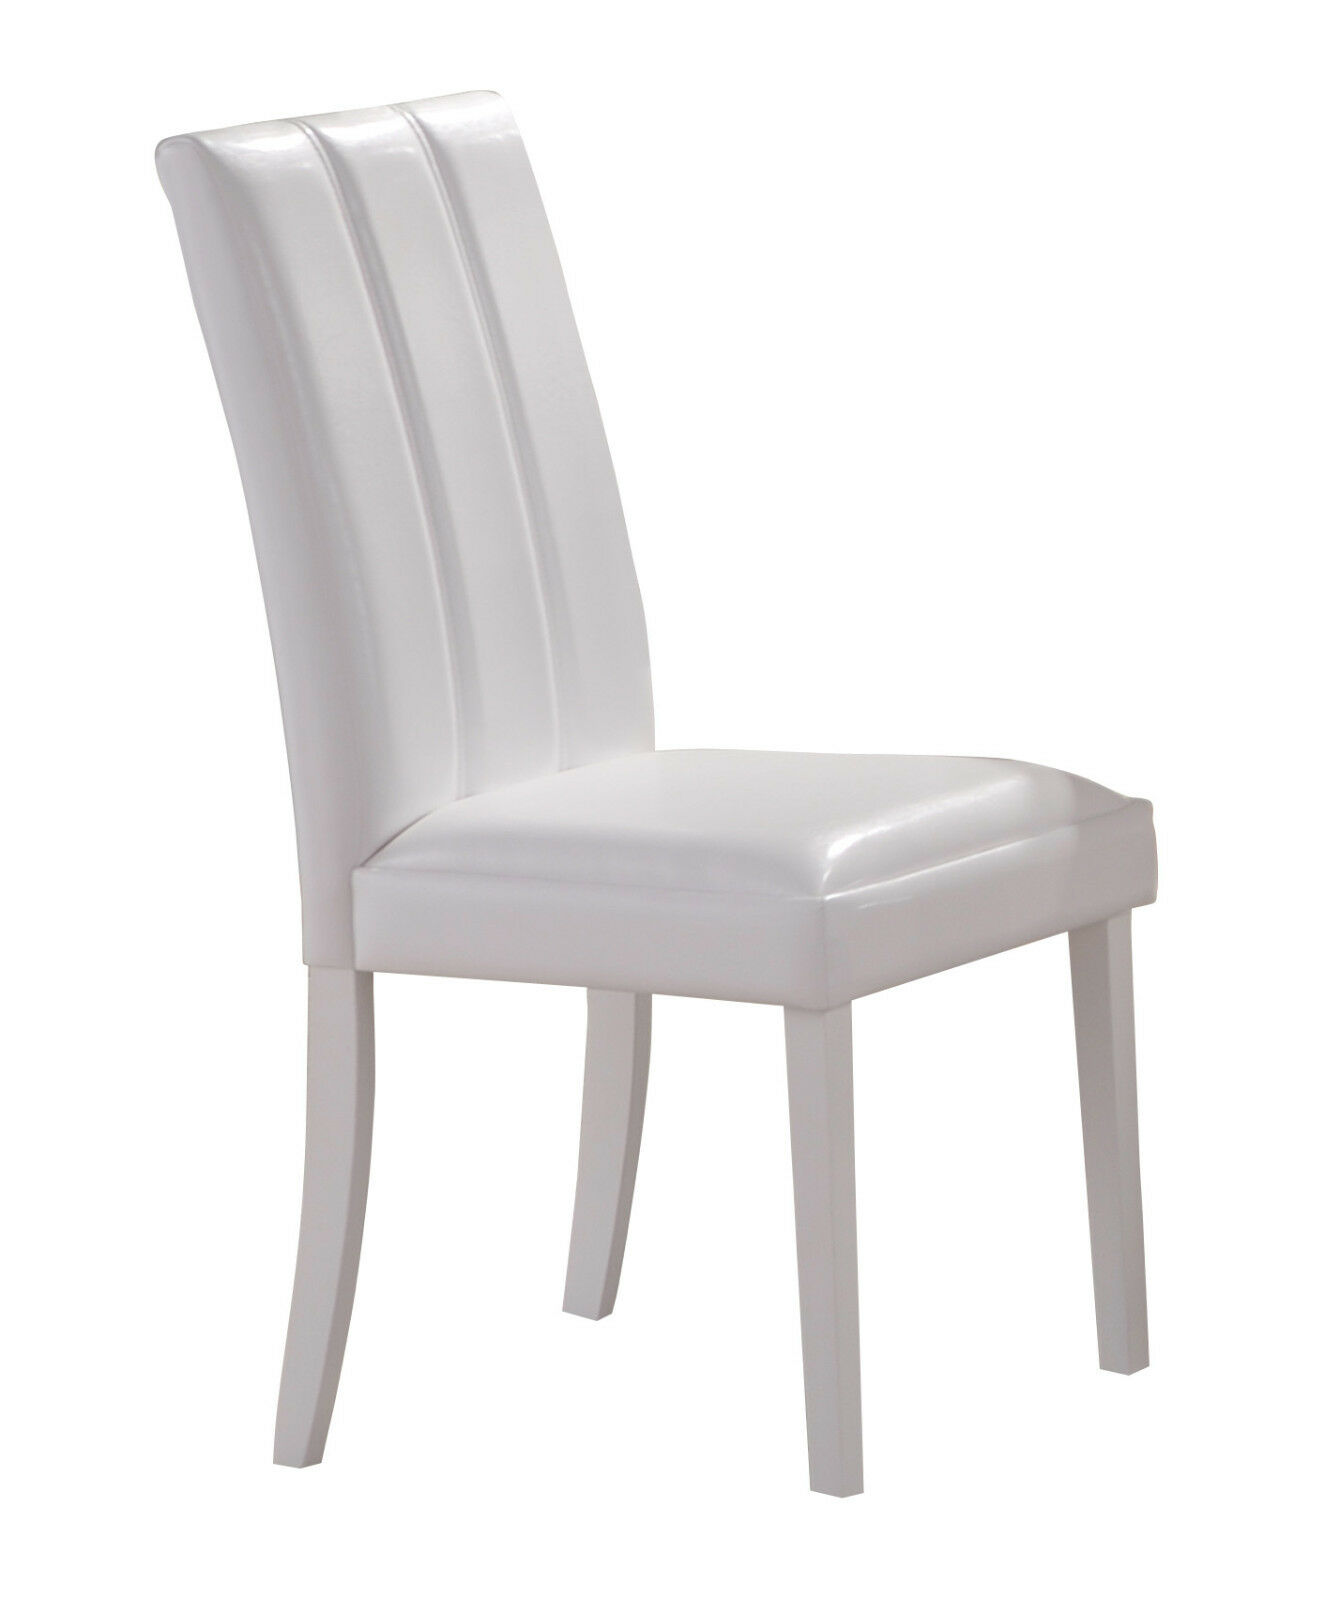 Chairs White Leather Wooden Legs